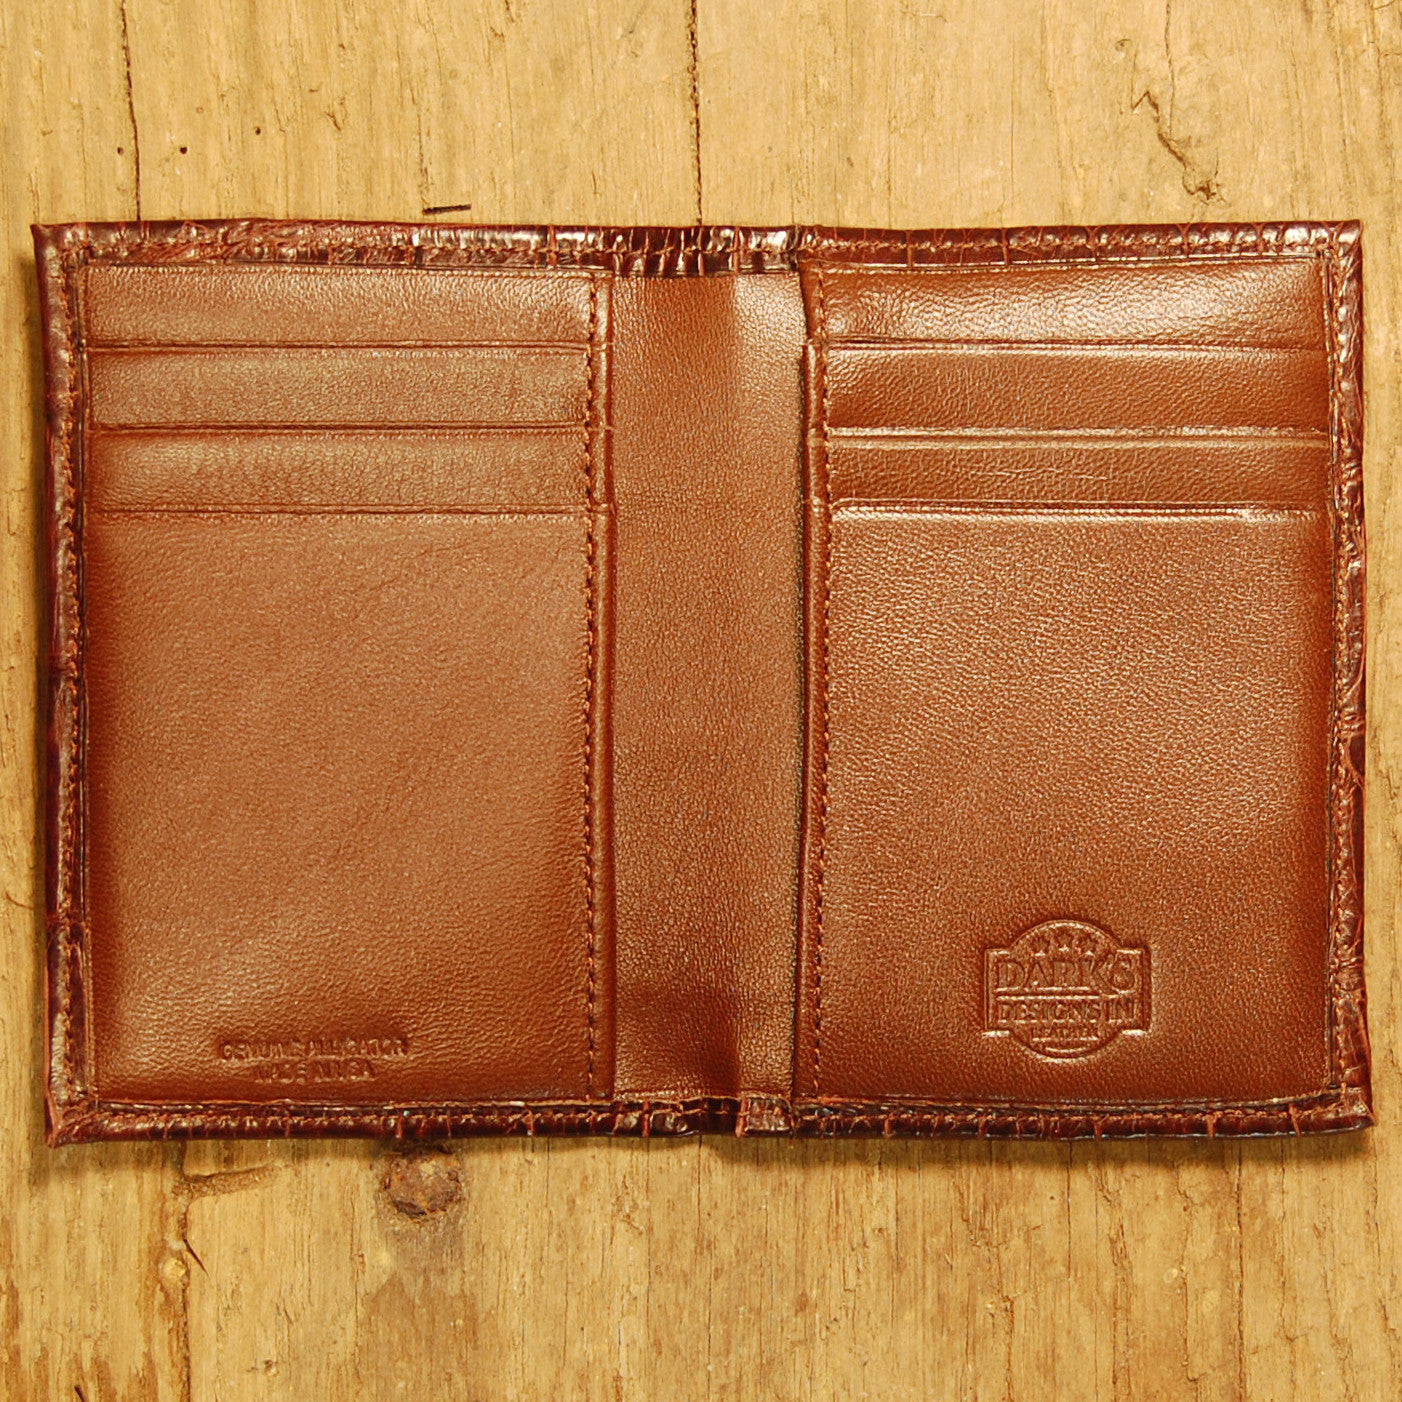 Dark's Leather Executive Card Case in Alligator Brown, Interior